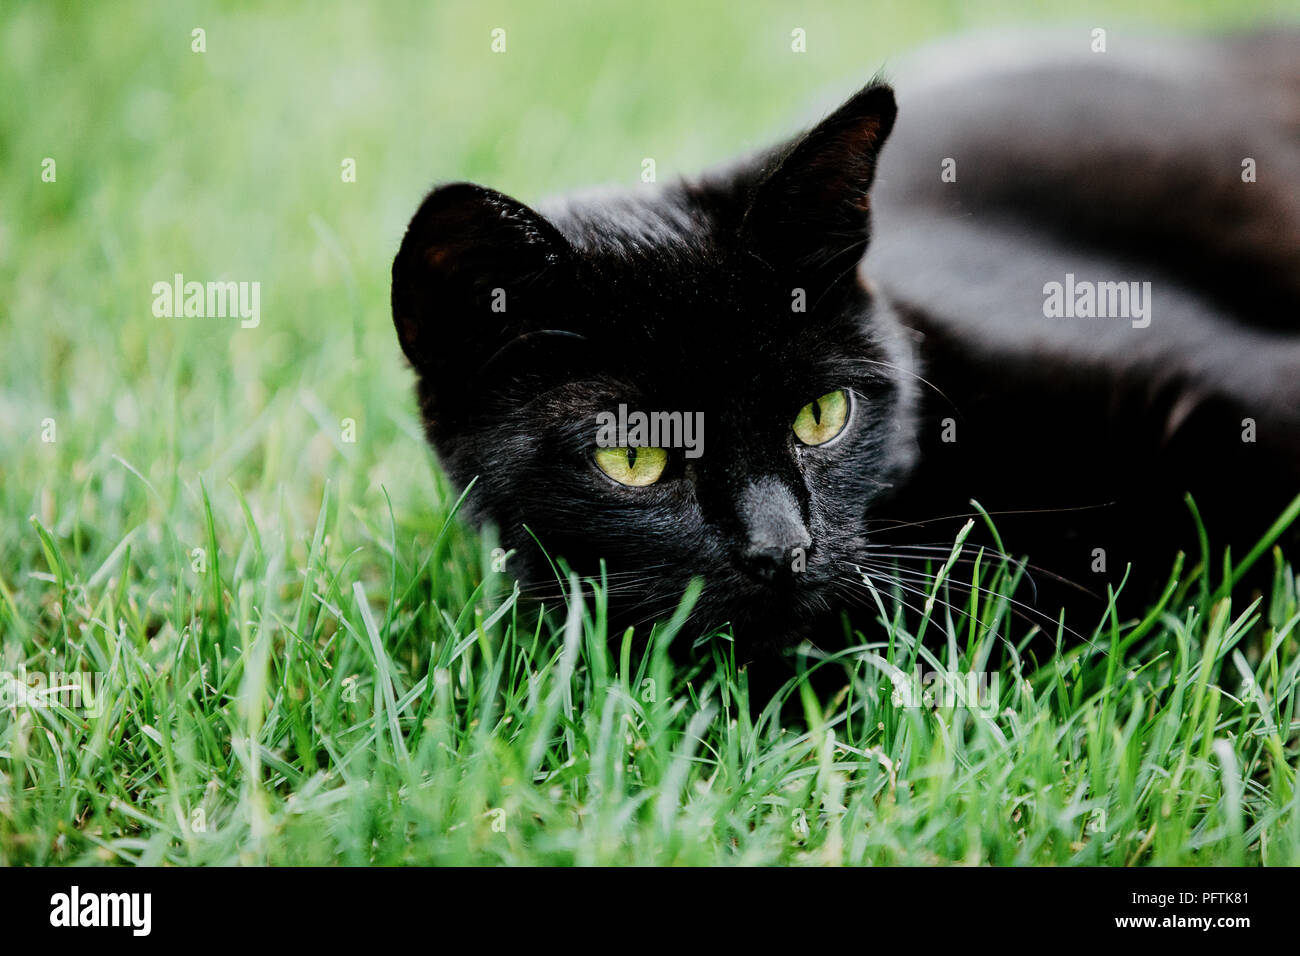 Close-up of black cat lying on green grass and watching something. Black cat superstition as bringer of bad luck or good luck. Black cat appreciation  - Stock Image